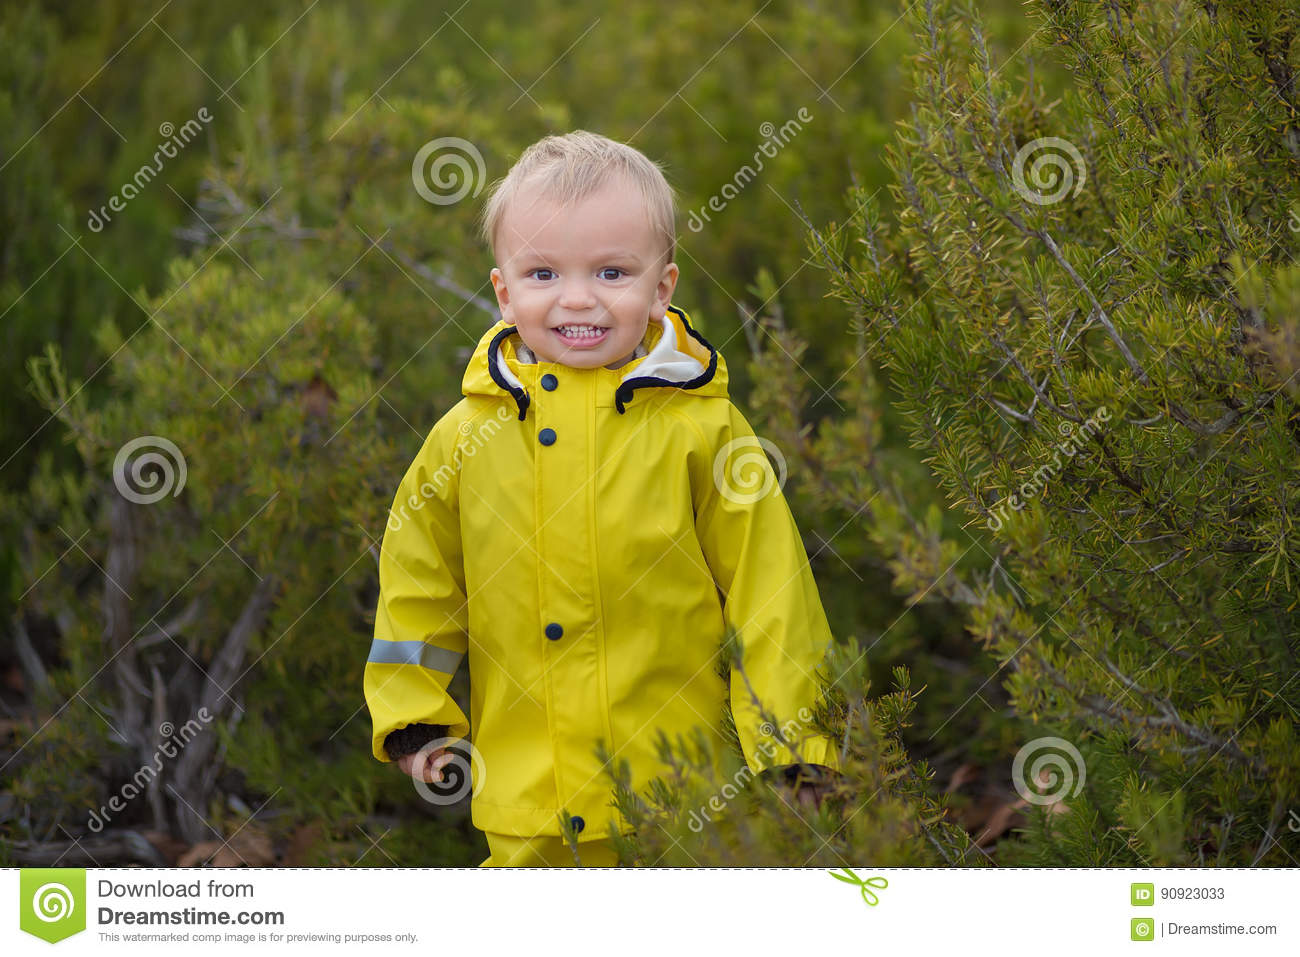 Little boy playing in rainy summer park. Child with colorful rainbow umbrella, waterproof coat and boots jumping in